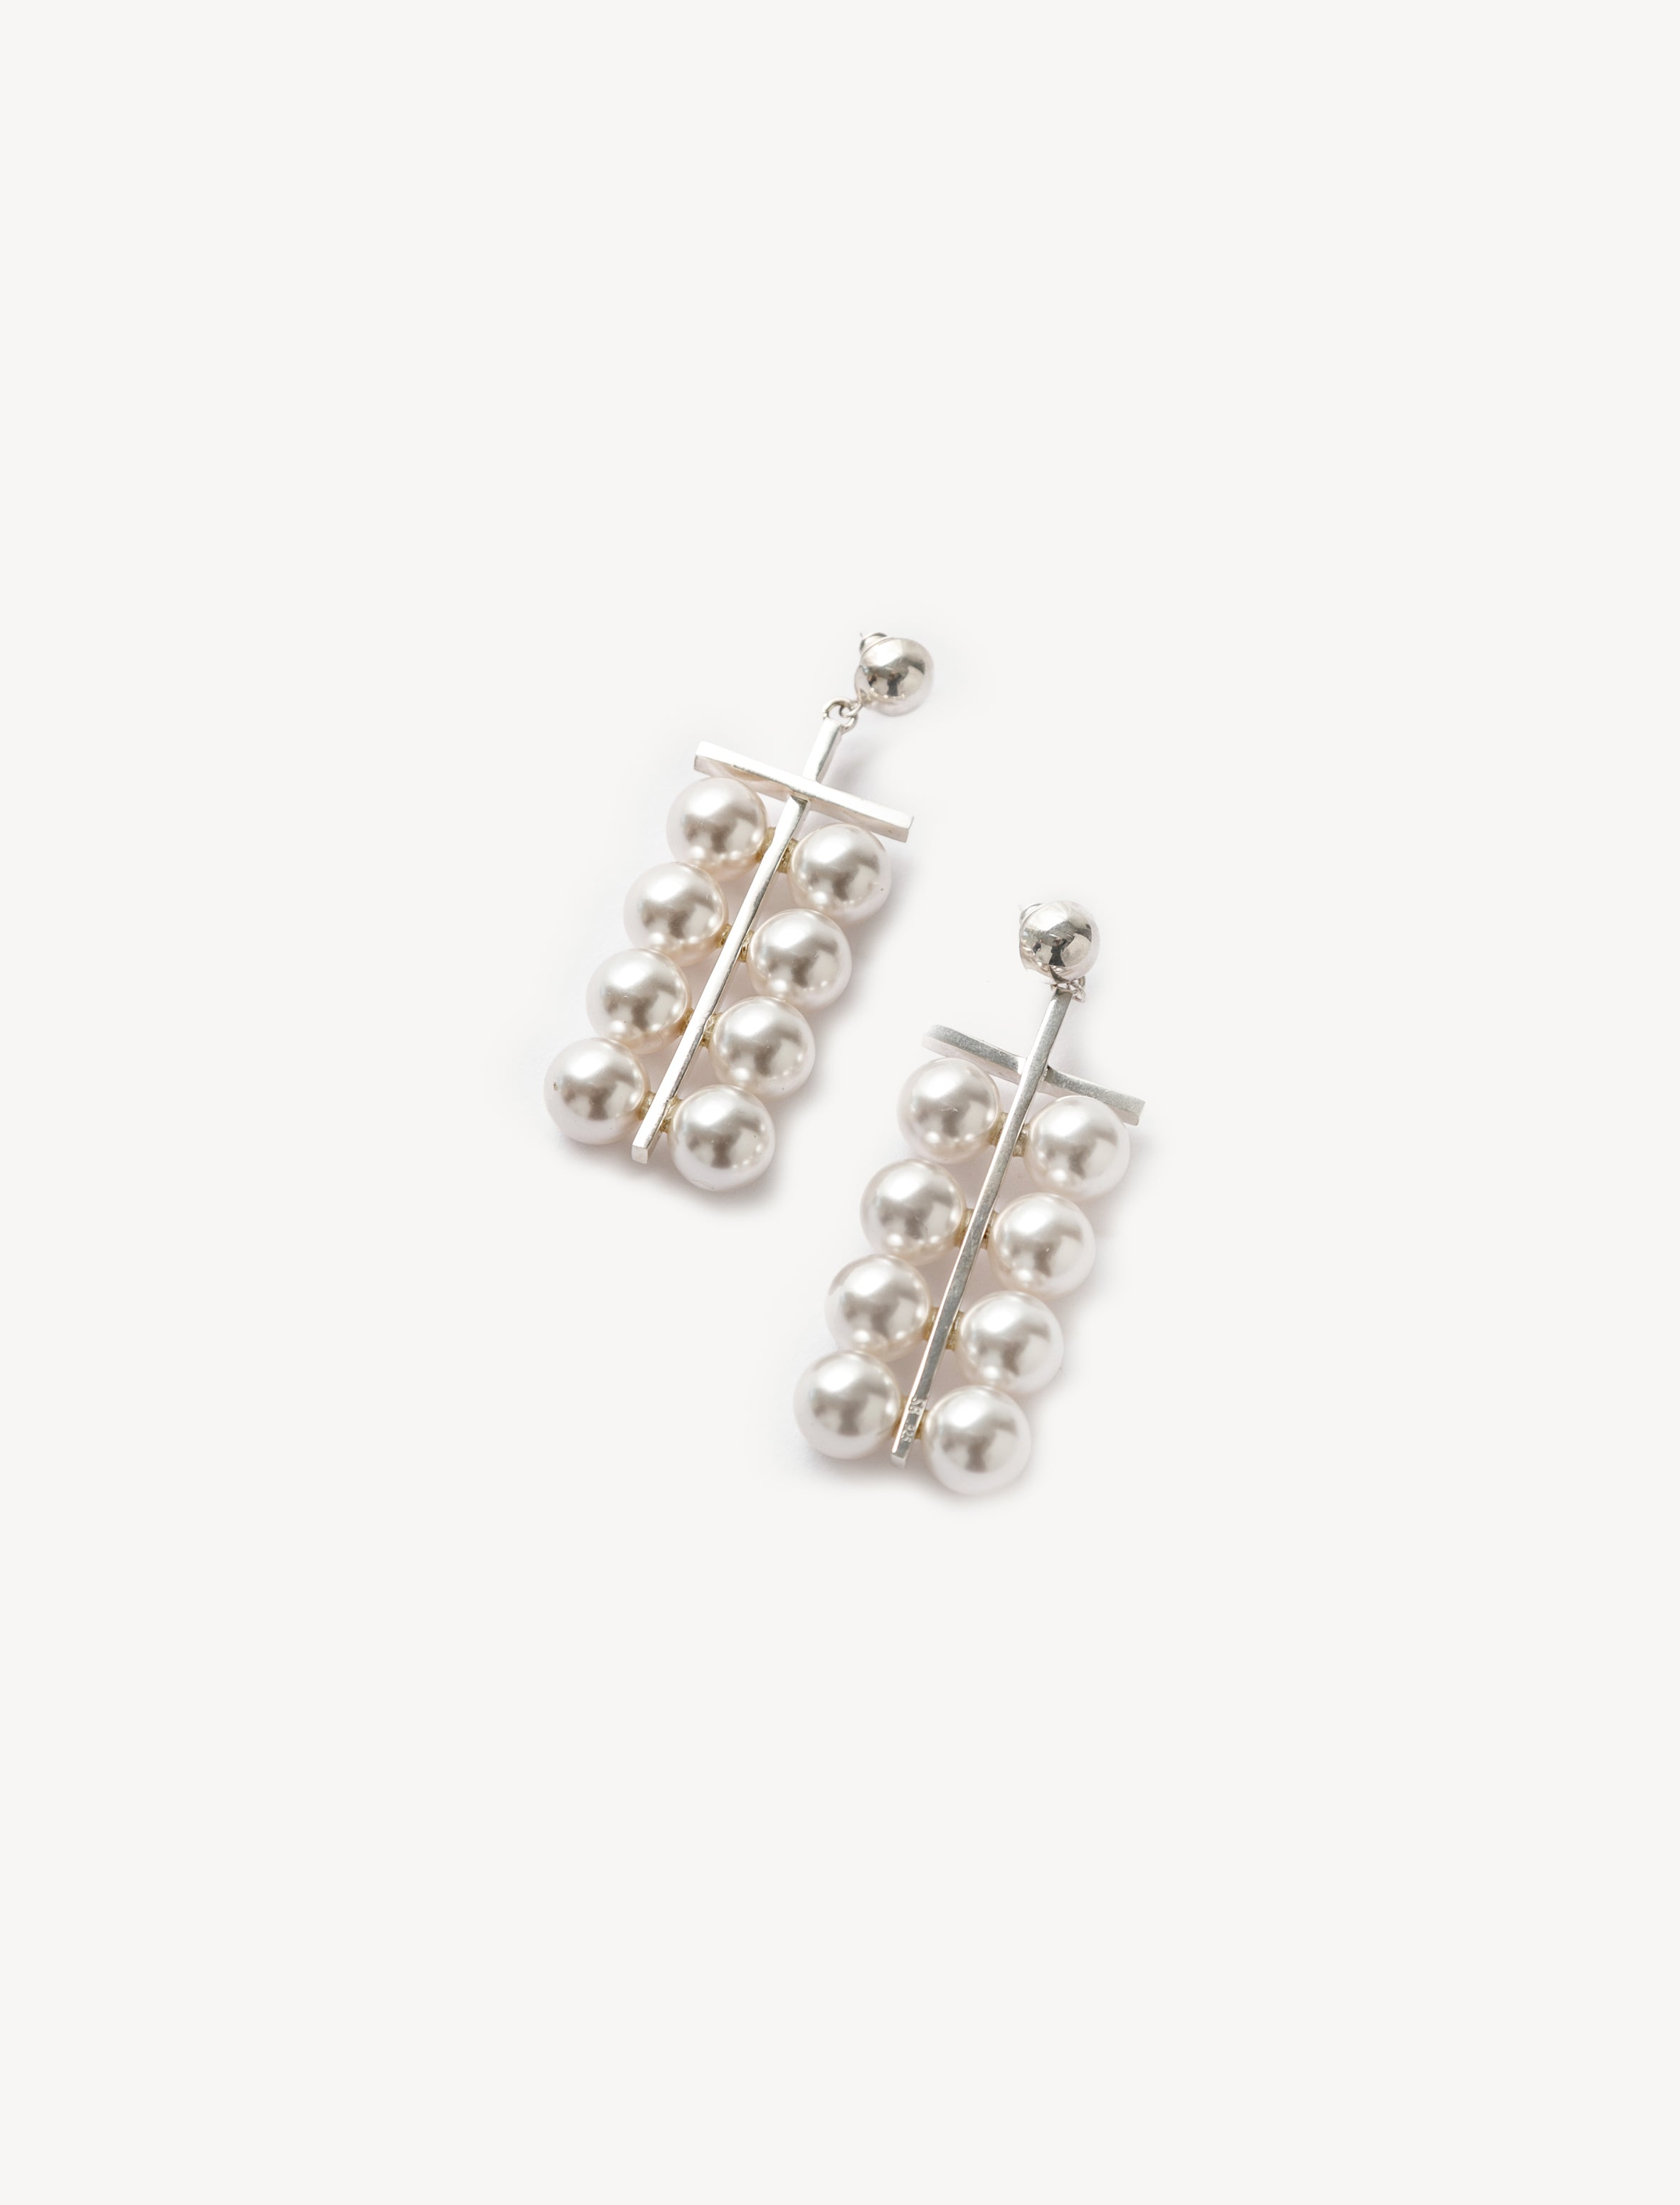 Sophie Buhai Pearl Abacus Earrings